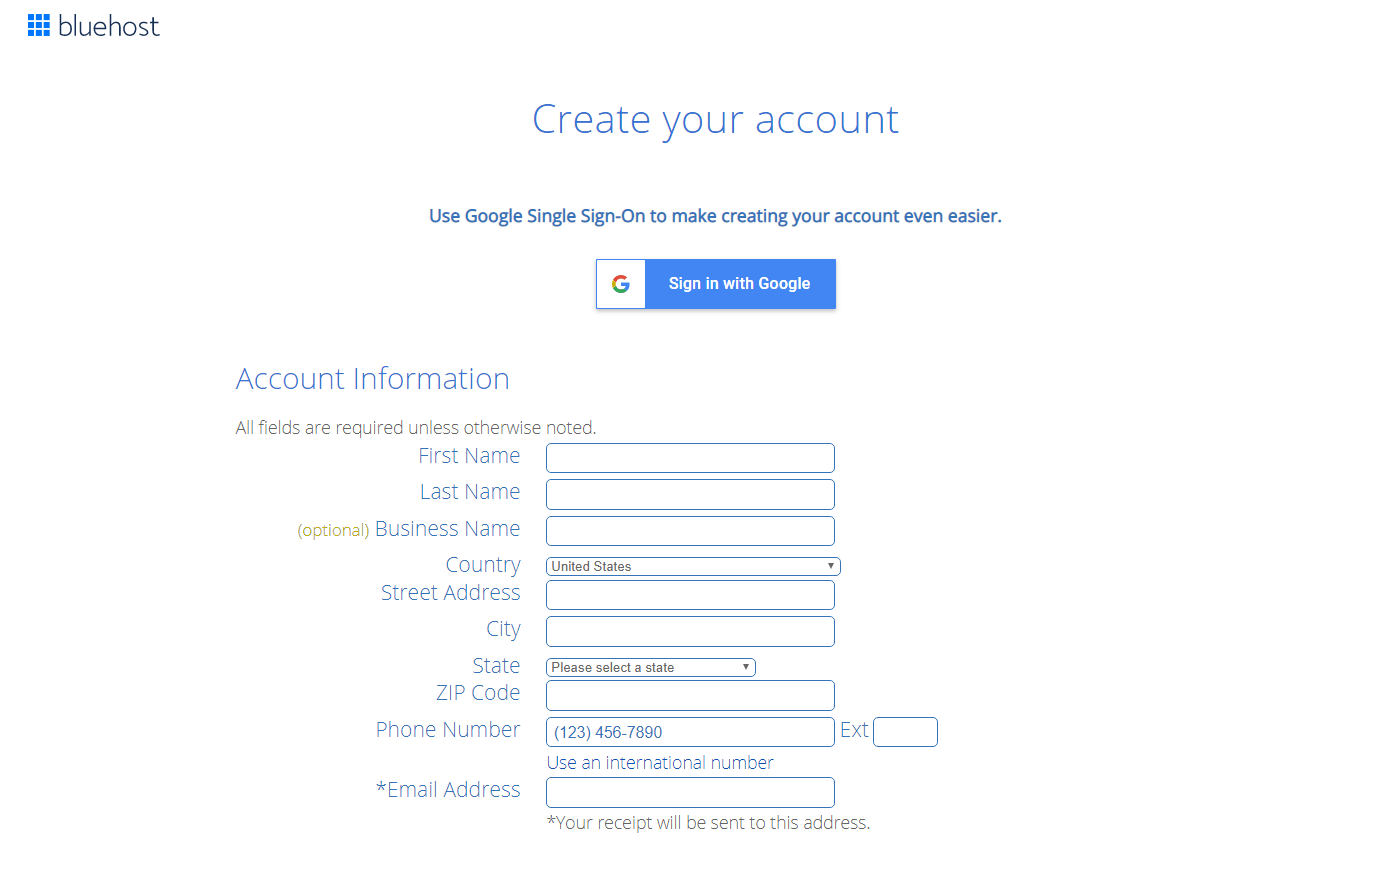 How to Create a New Bluehost Account [Avoid This Common Mistake]-image4